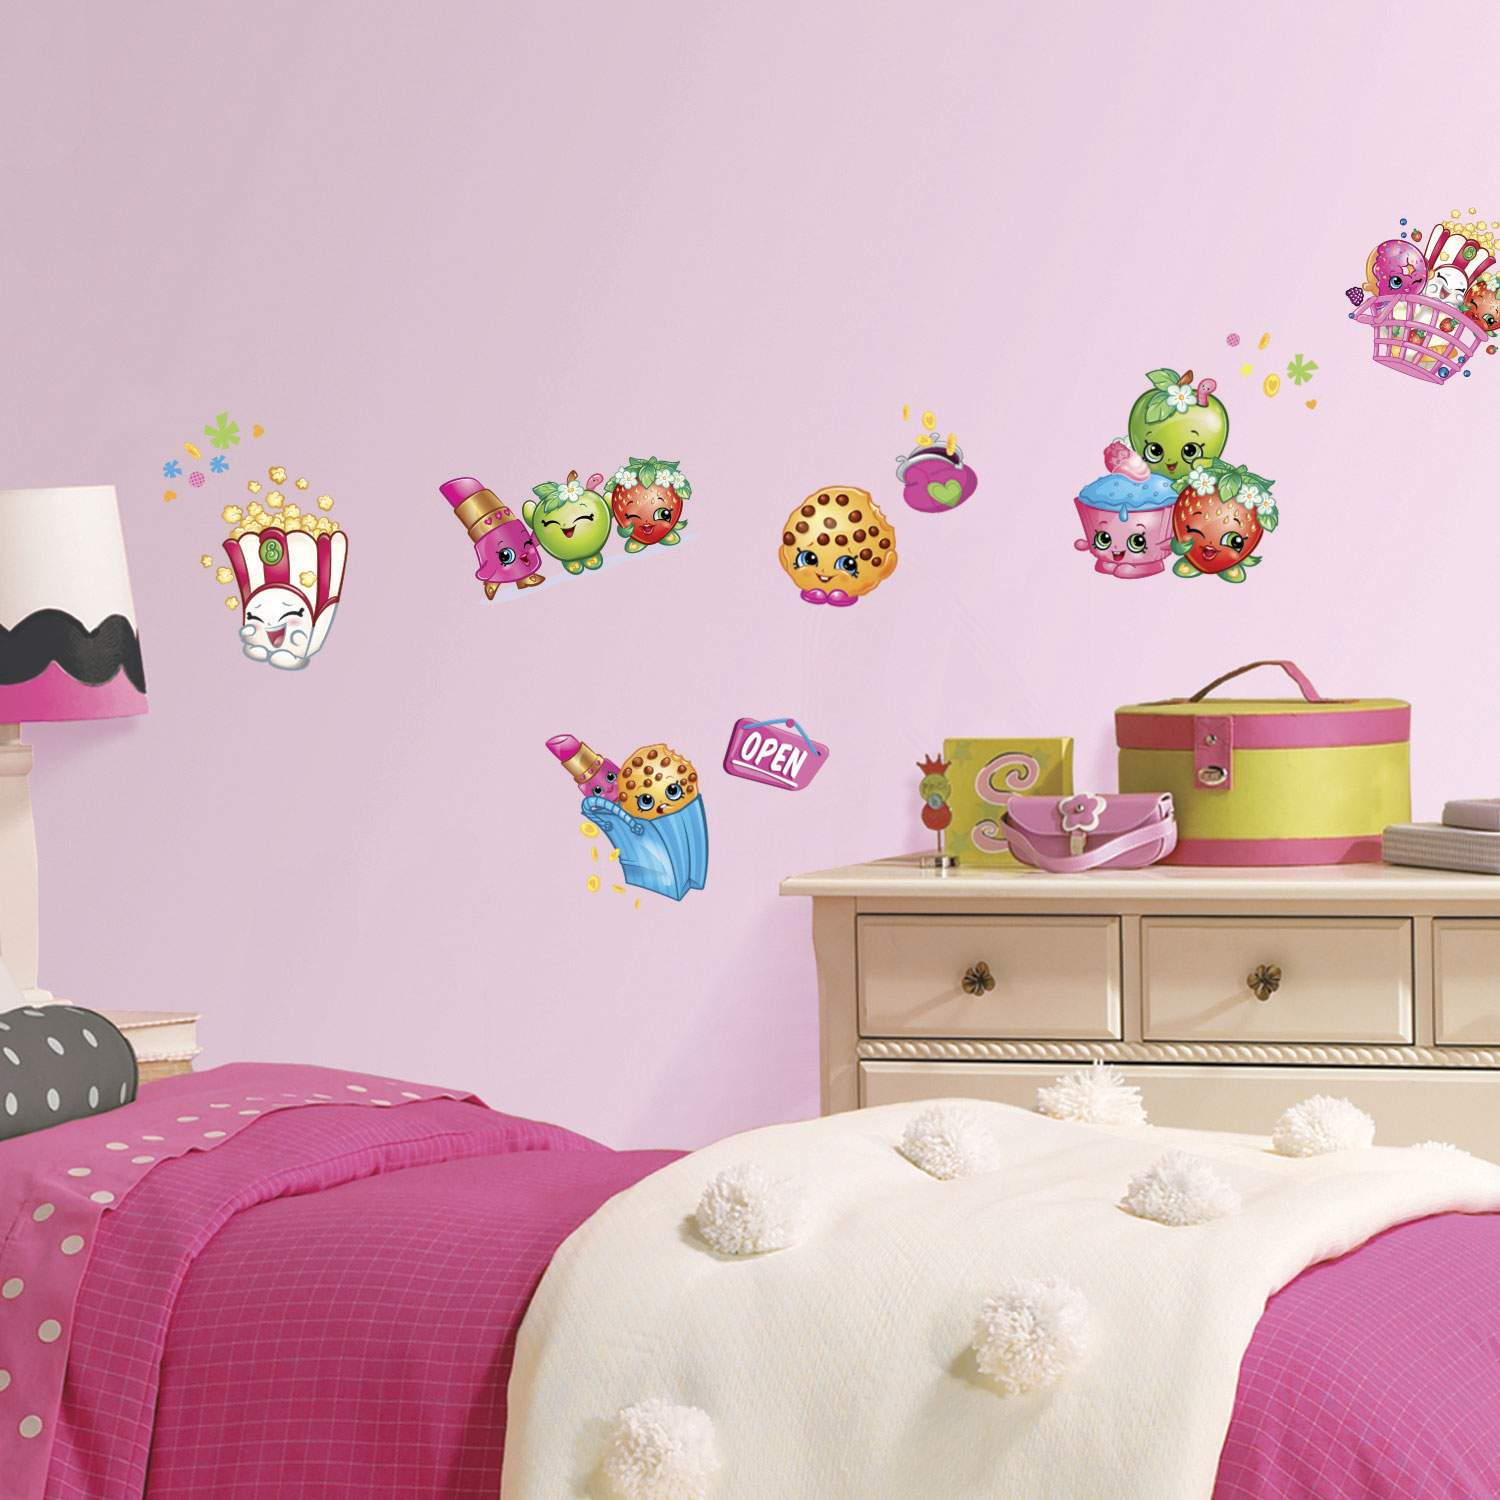 Roommates peppa pig wall decal pinkblue wall dcor borders roommates shopkins wall decal dcalcomanie murale de roommates shopkins amipublicfo Images